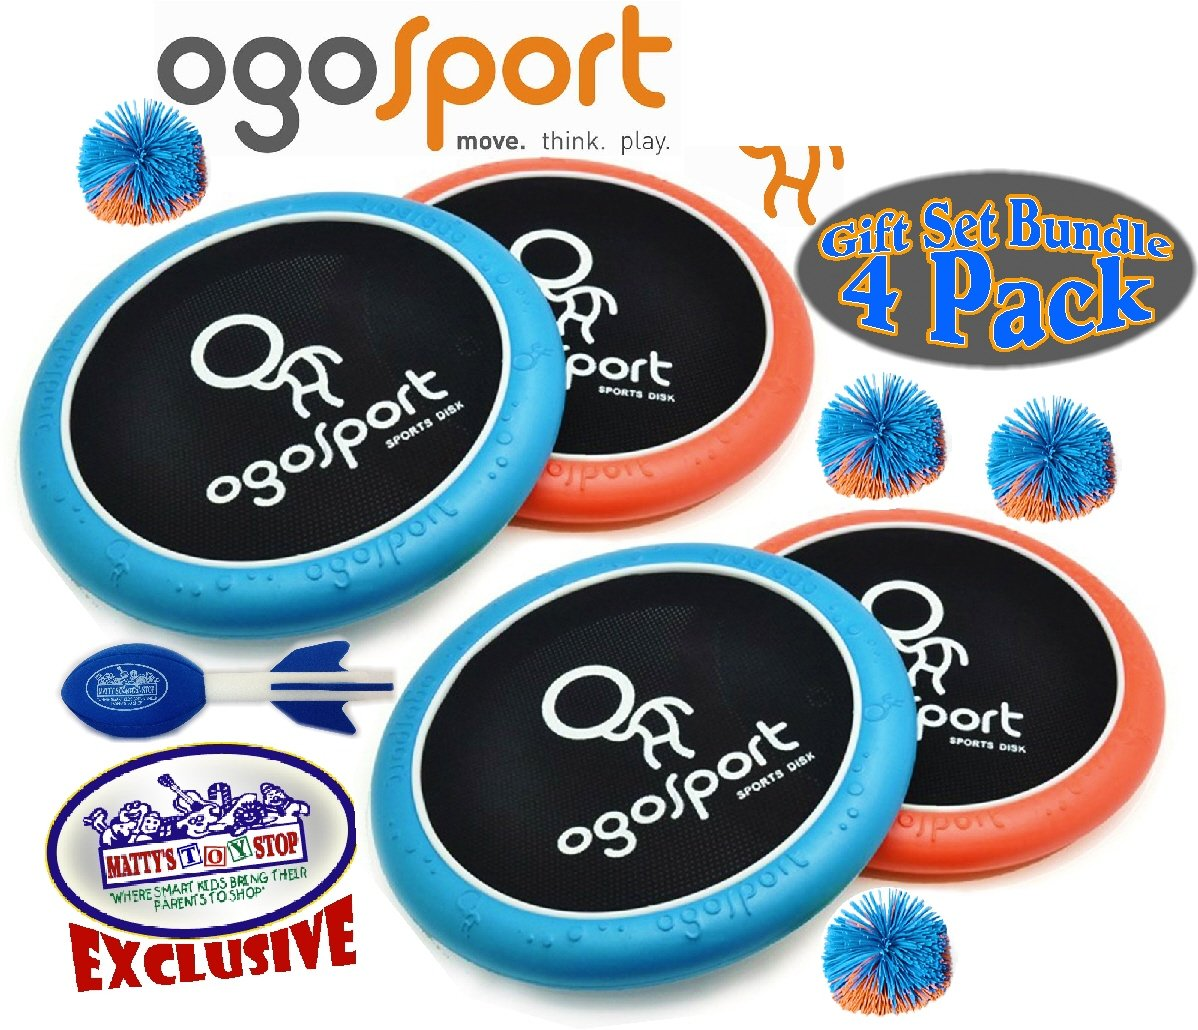 Ogo Sport 15'' Mezo OgoDisk, Ogo Soft Ball & Exclusive ''Matty's Toy Stop'' Mini Aero Football Deluxe Family Gift Set Bundle - 4 Pack by OgoSport